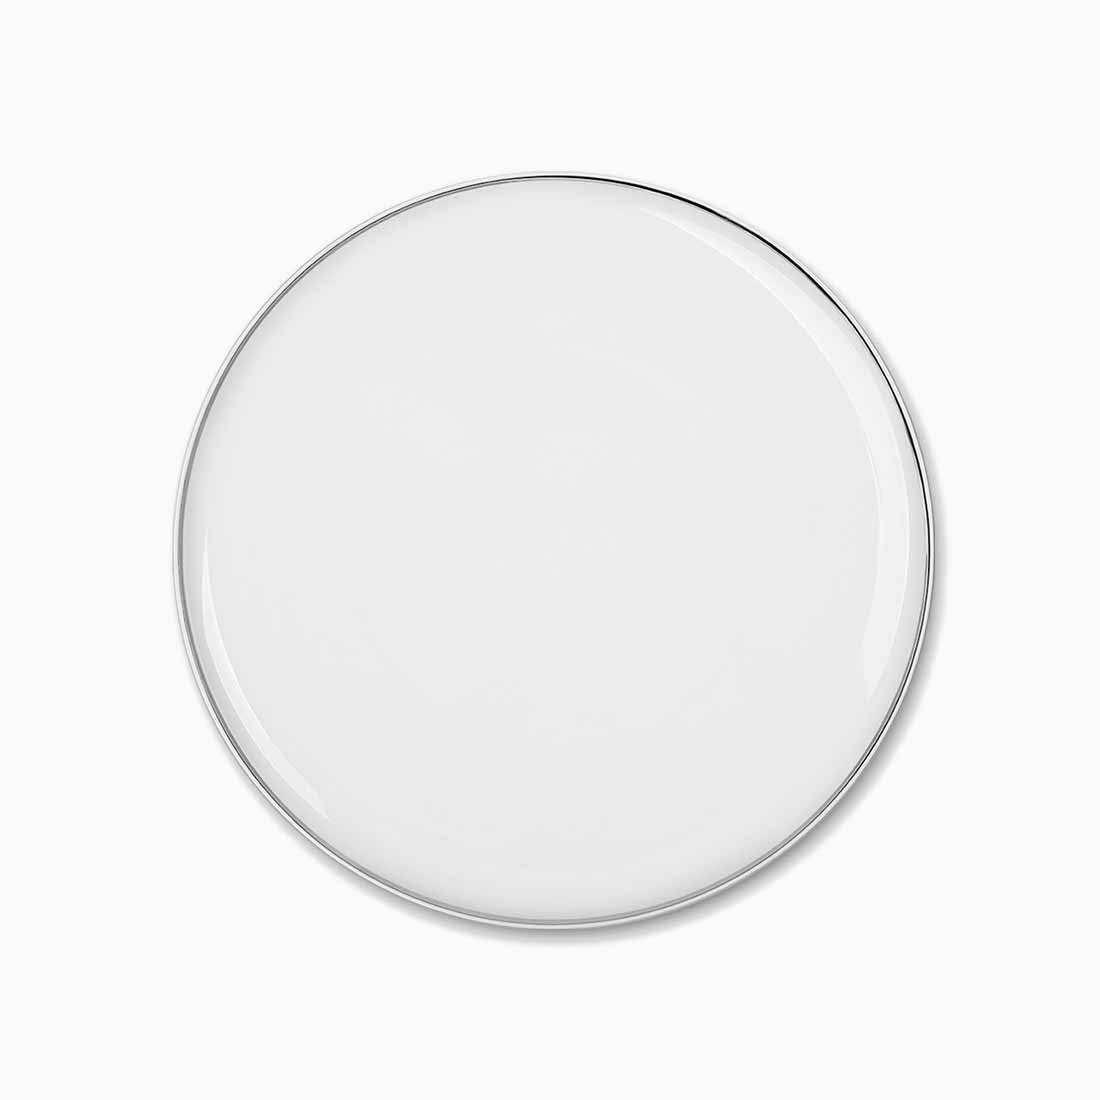 Pomona Plate White with platinum line 28 cm by Bodo Sperlein